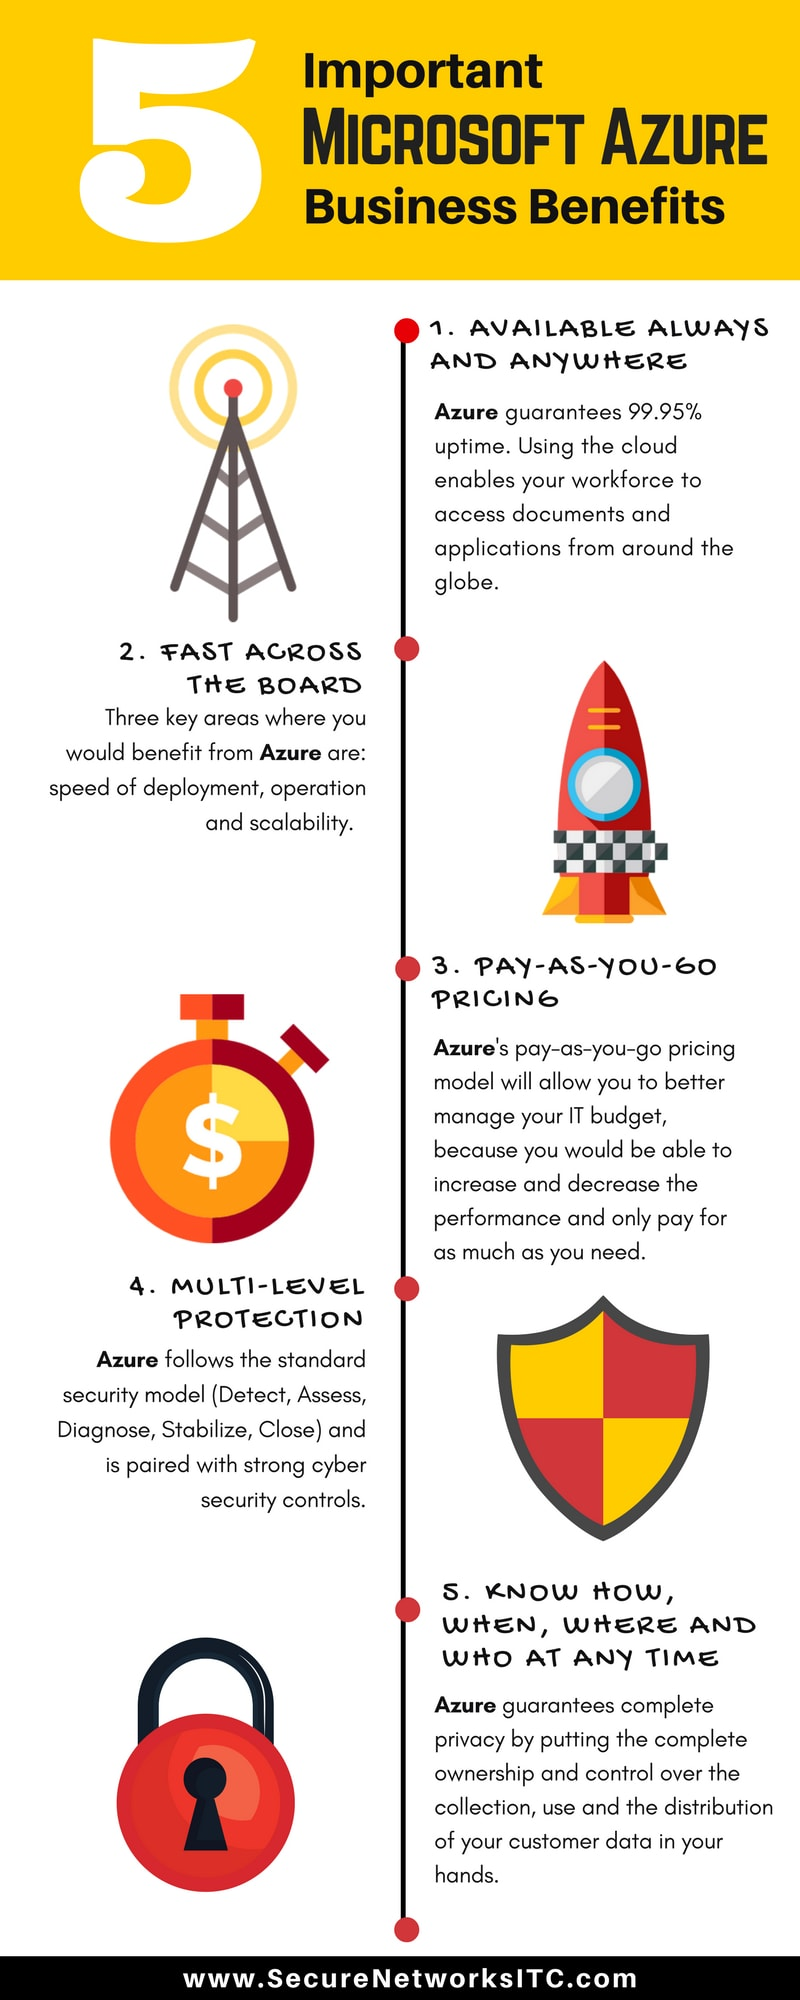 San Diego Azure Business Benefits - Infographic